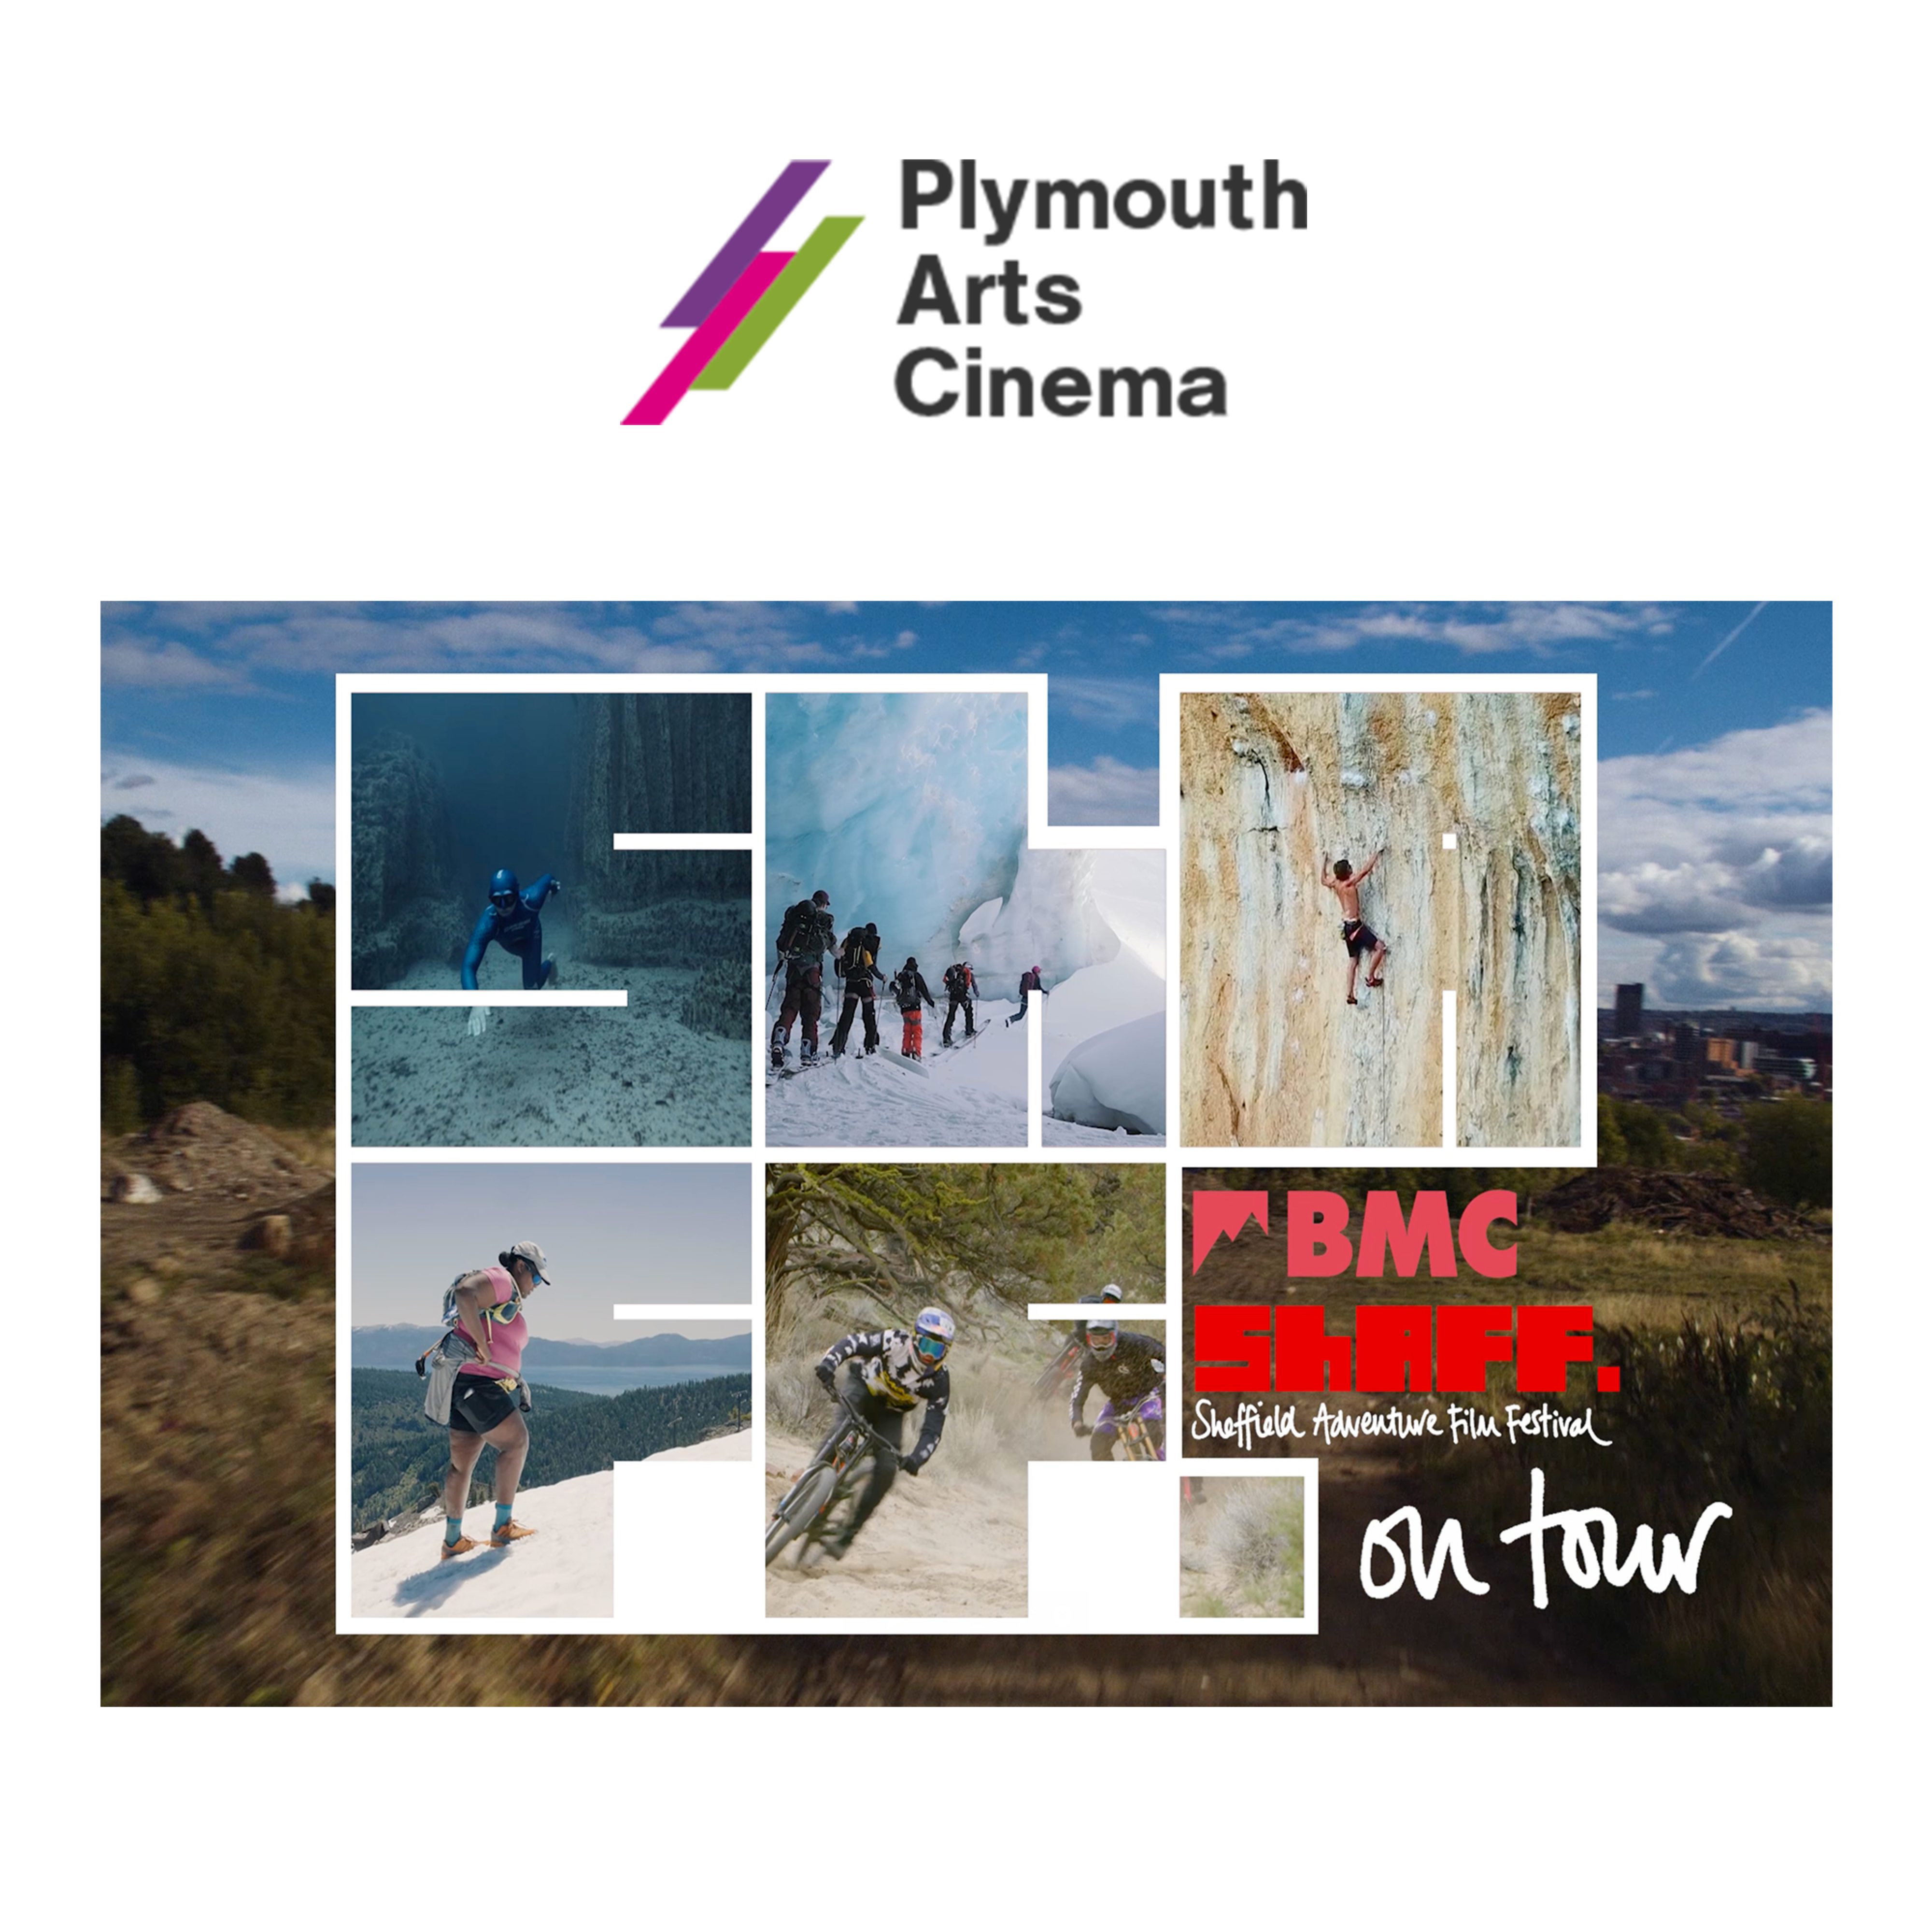 The Best of ShAFF 2020 at Plymouth Arts Cinema